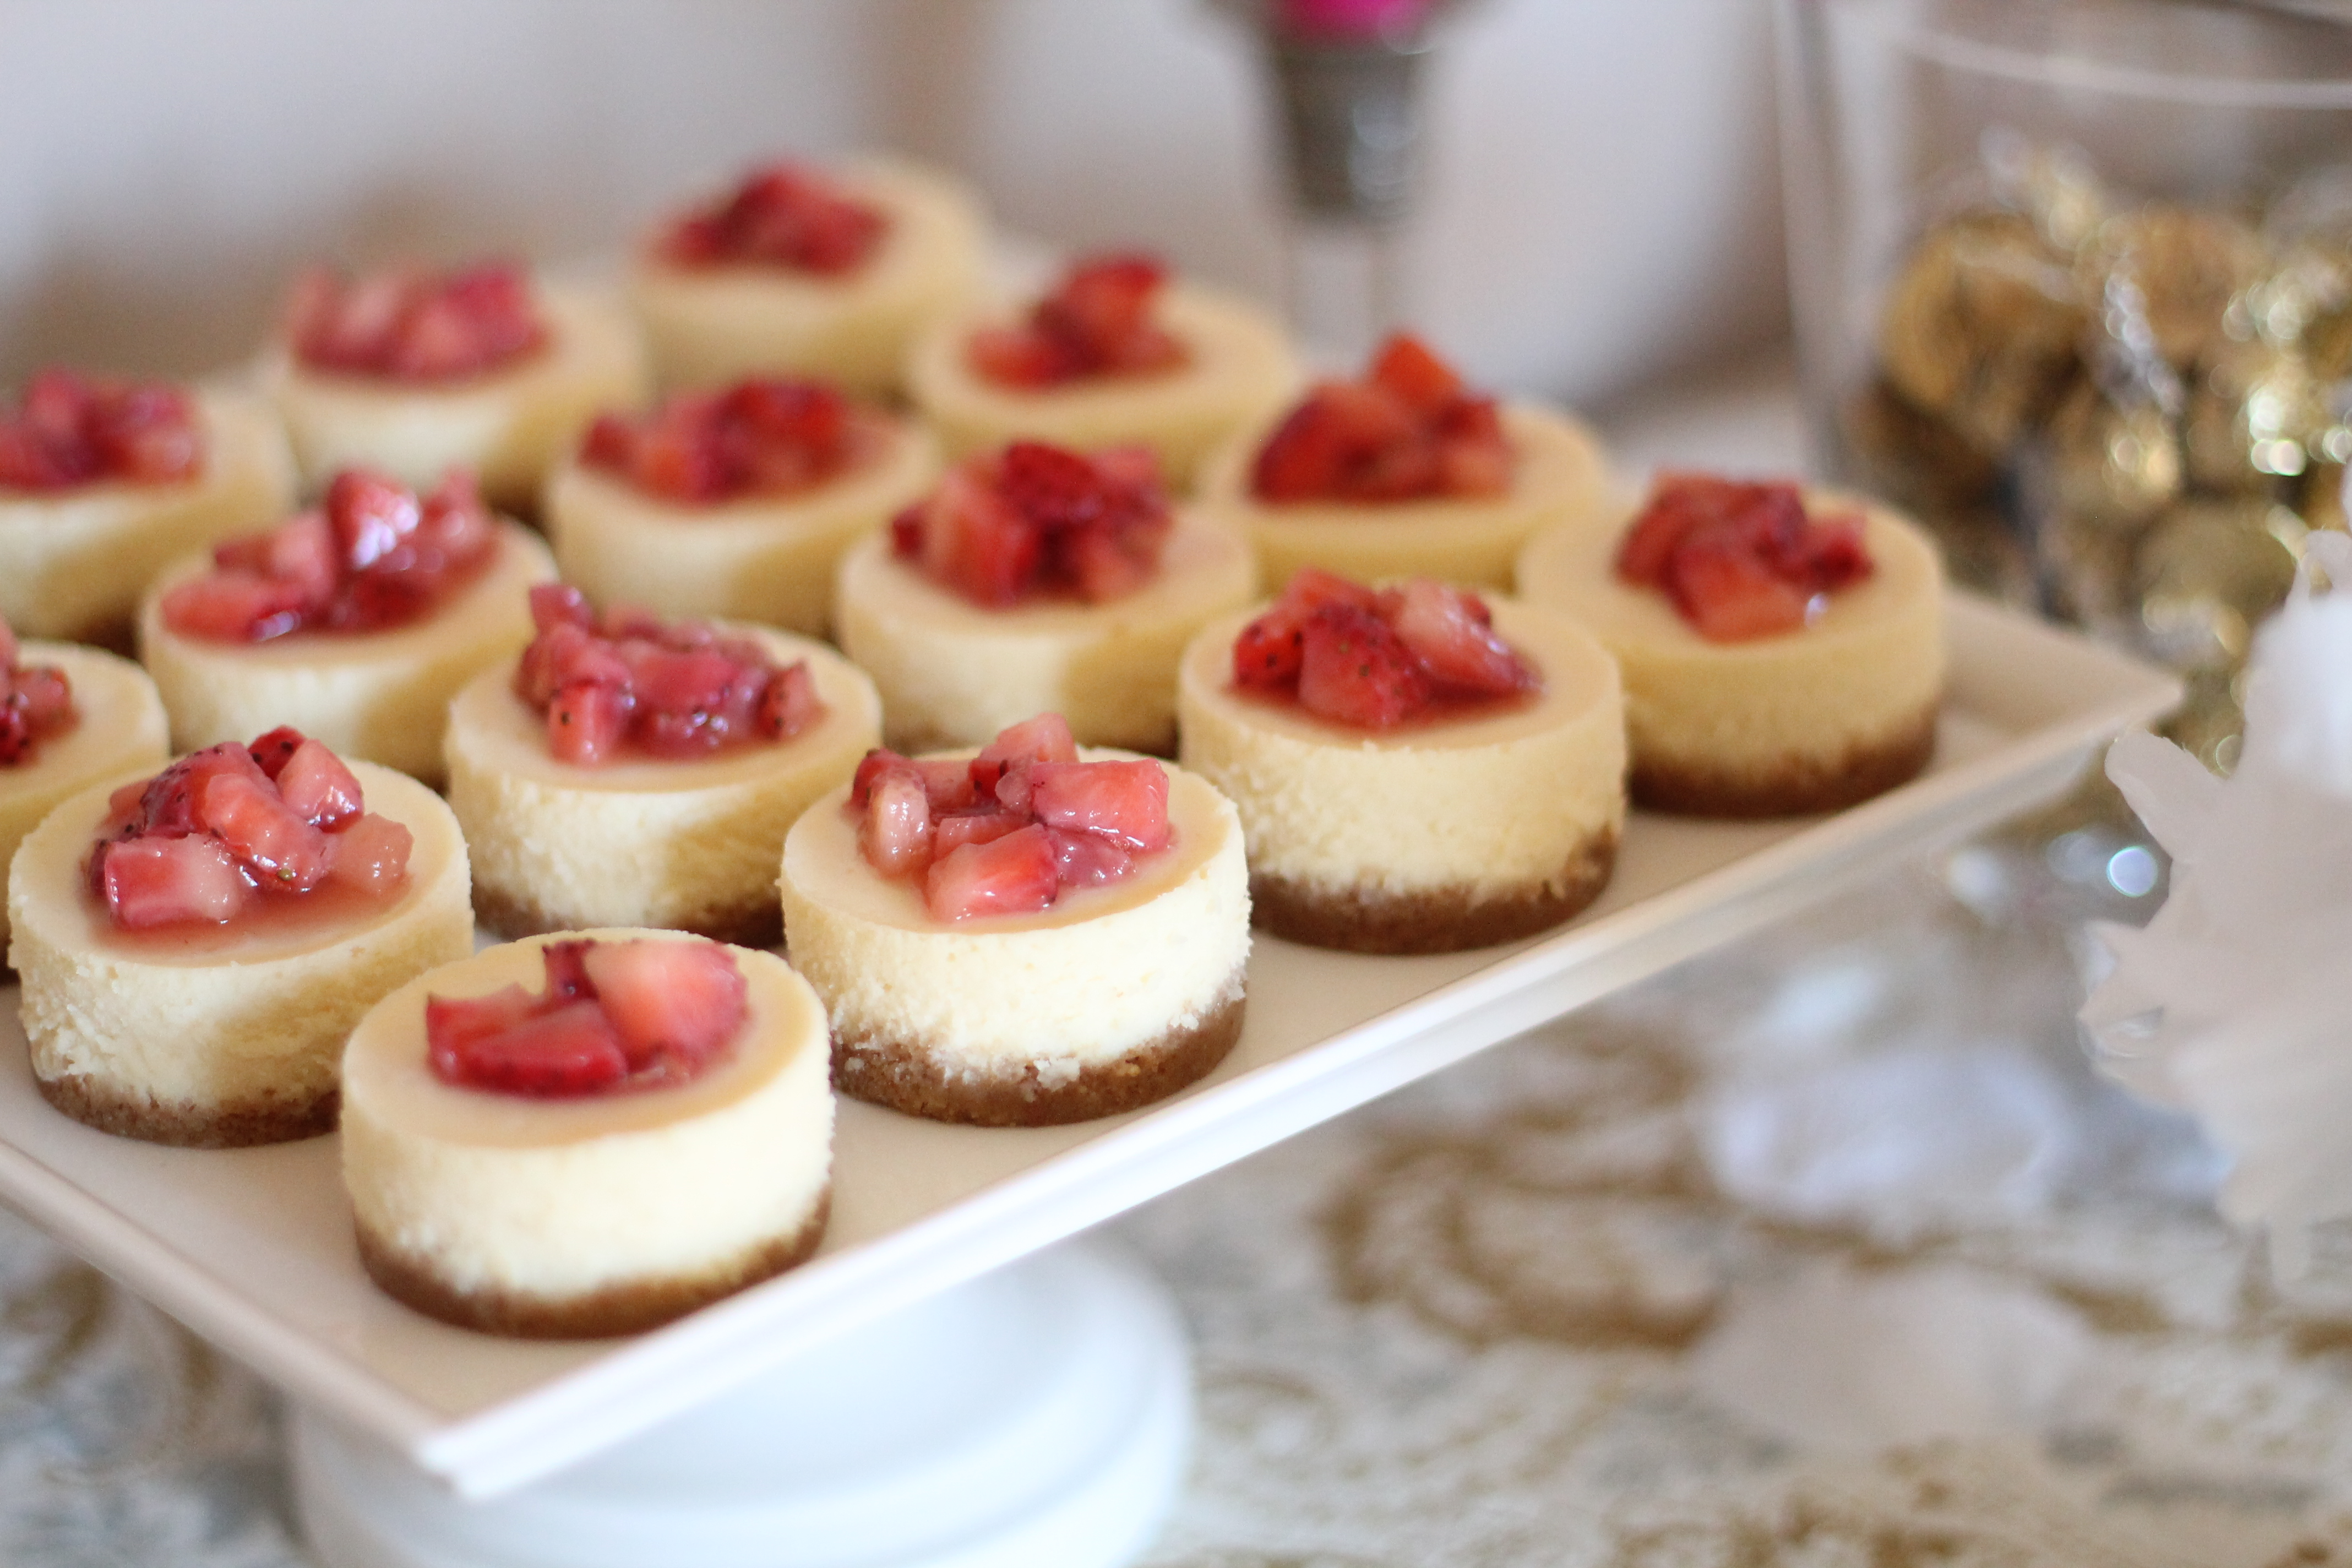 Bridal Shower Dessert Table Ideas 10 bridal shower dessert ideas guests will go crazy for brides Congratulations Mairaed I Am So Incredibly Happy For You You Are